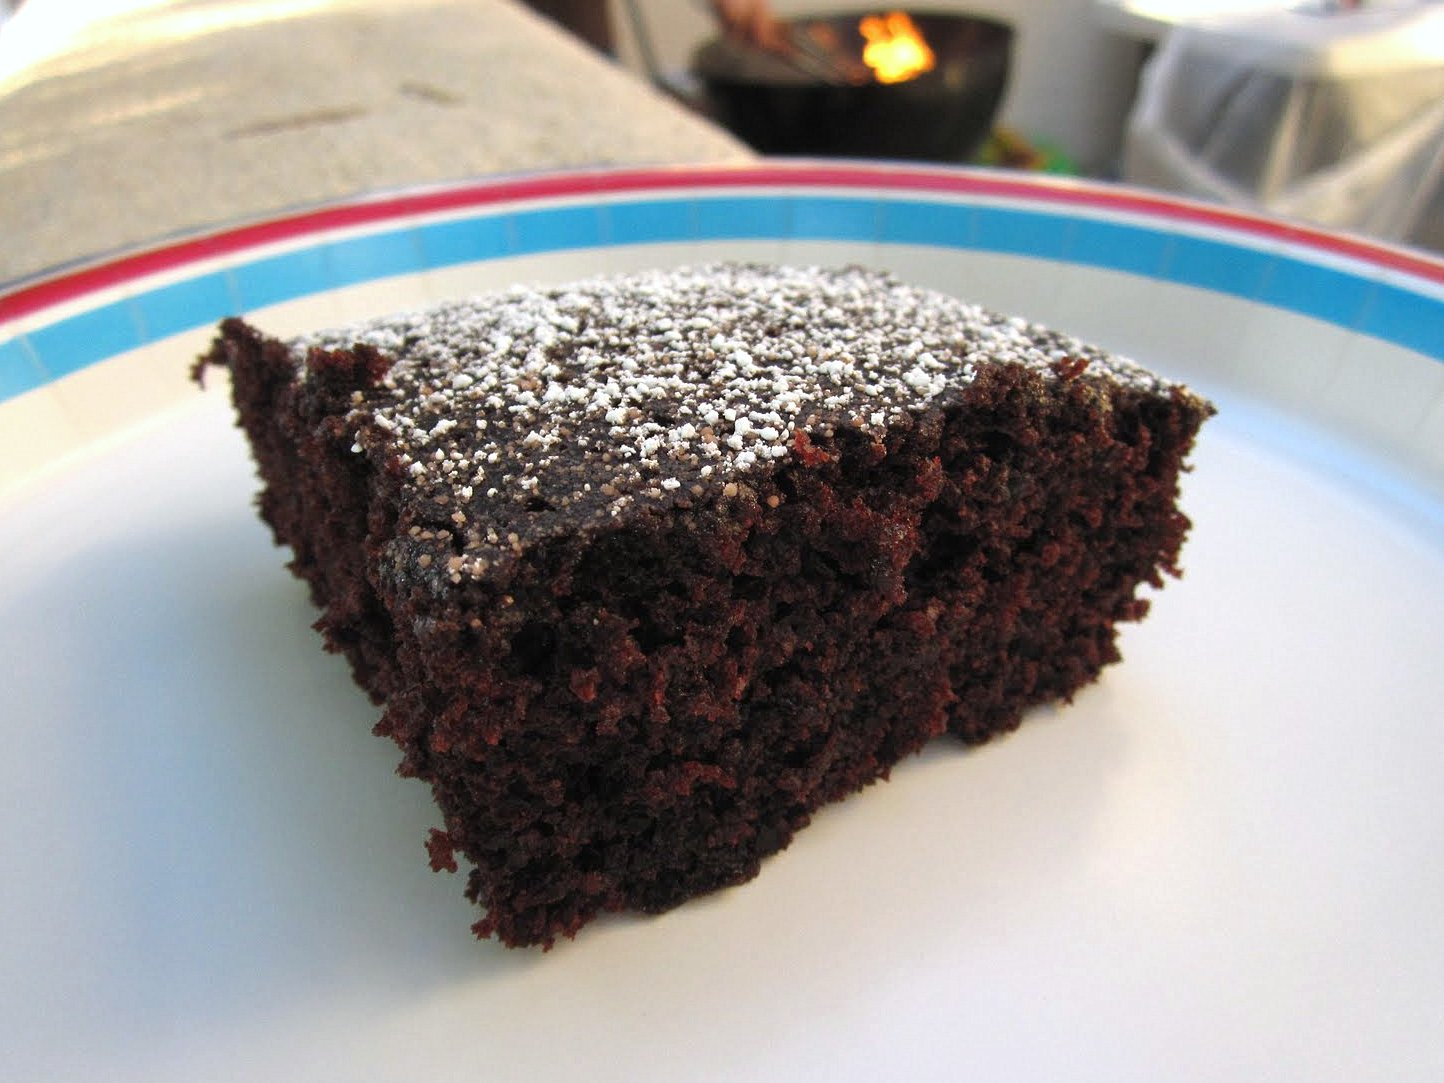 Images Of Eggless Chocolate Cake : Chomping Board: Chocolate Depression cake - eggless and ...